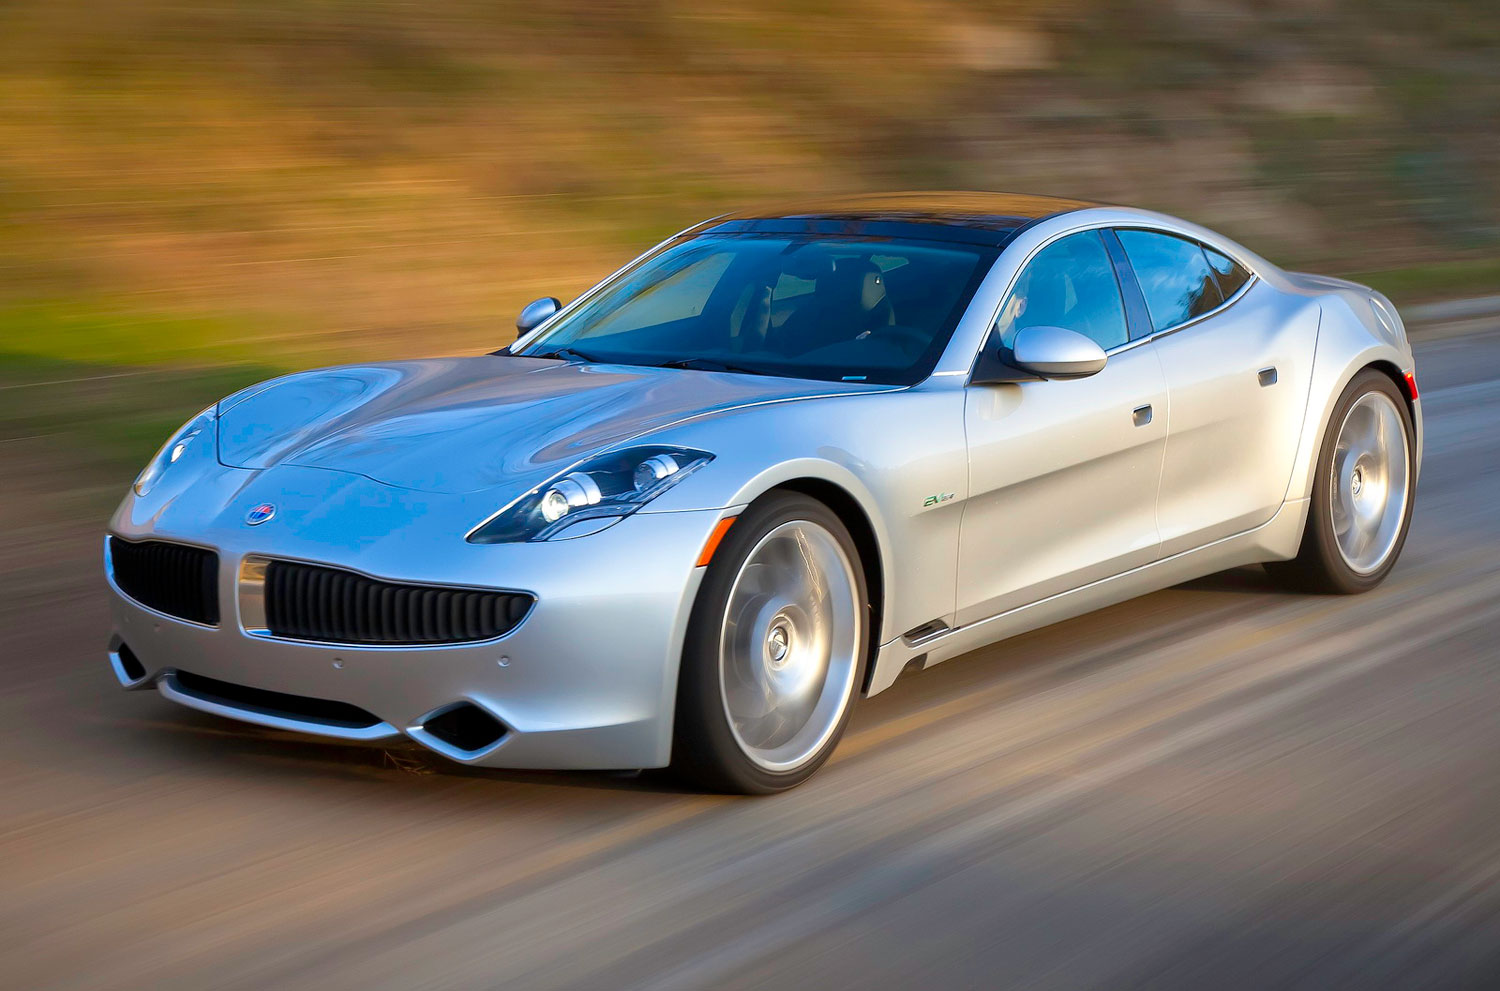 Fisker Automotive Assets Bought By Wanxiang For $1492